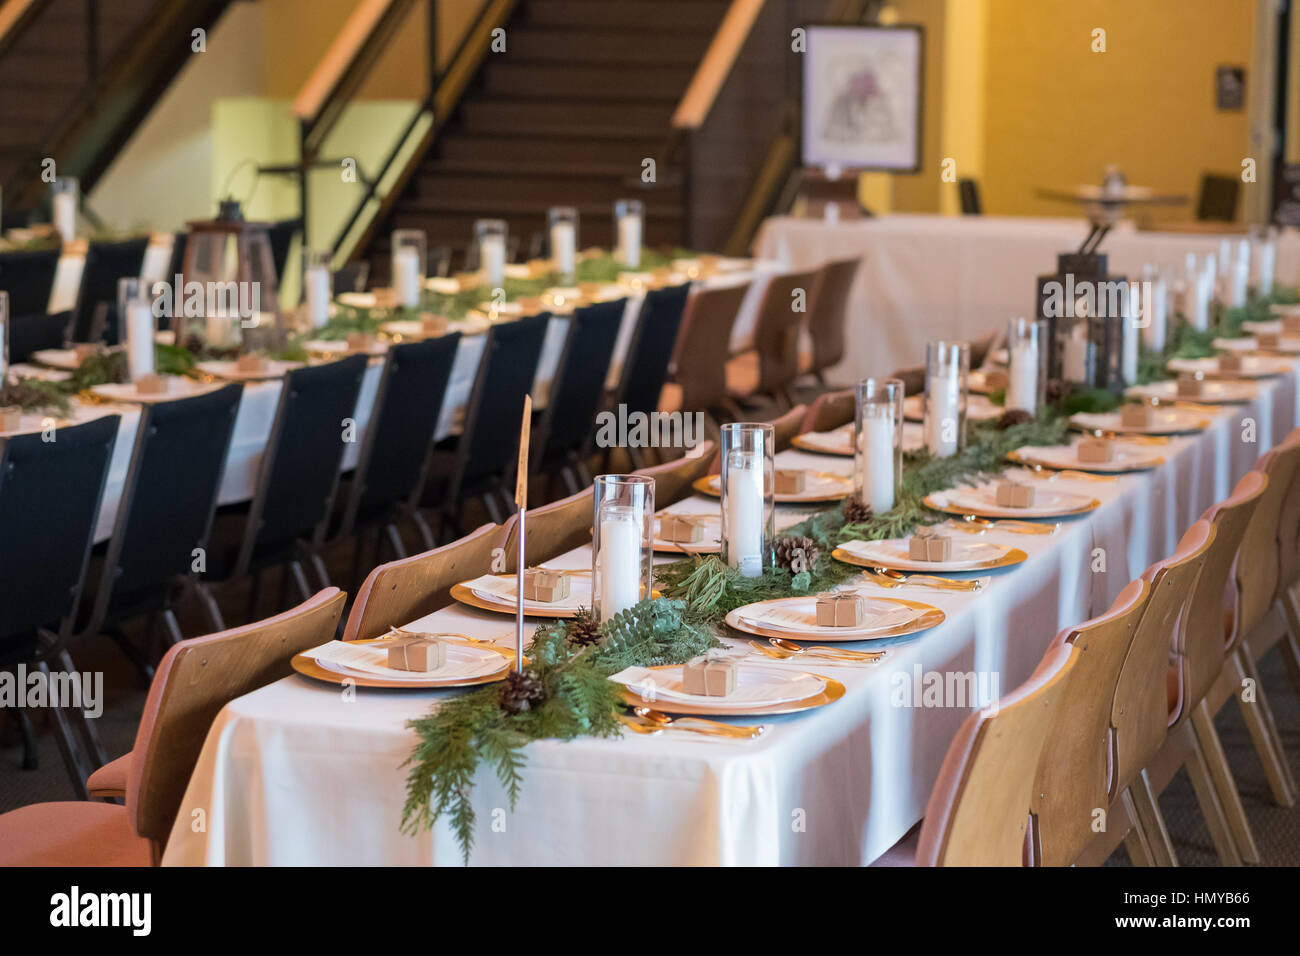 Wedding Reception Tables With Seating Plates And Candles At A